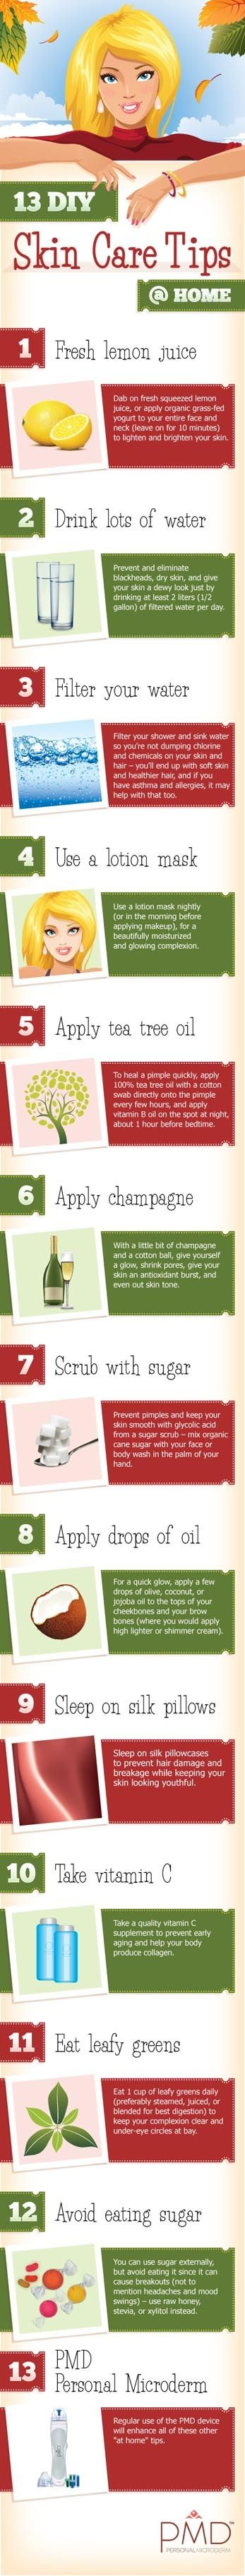 13 Skin Care Tips - I have the PMD and love it!